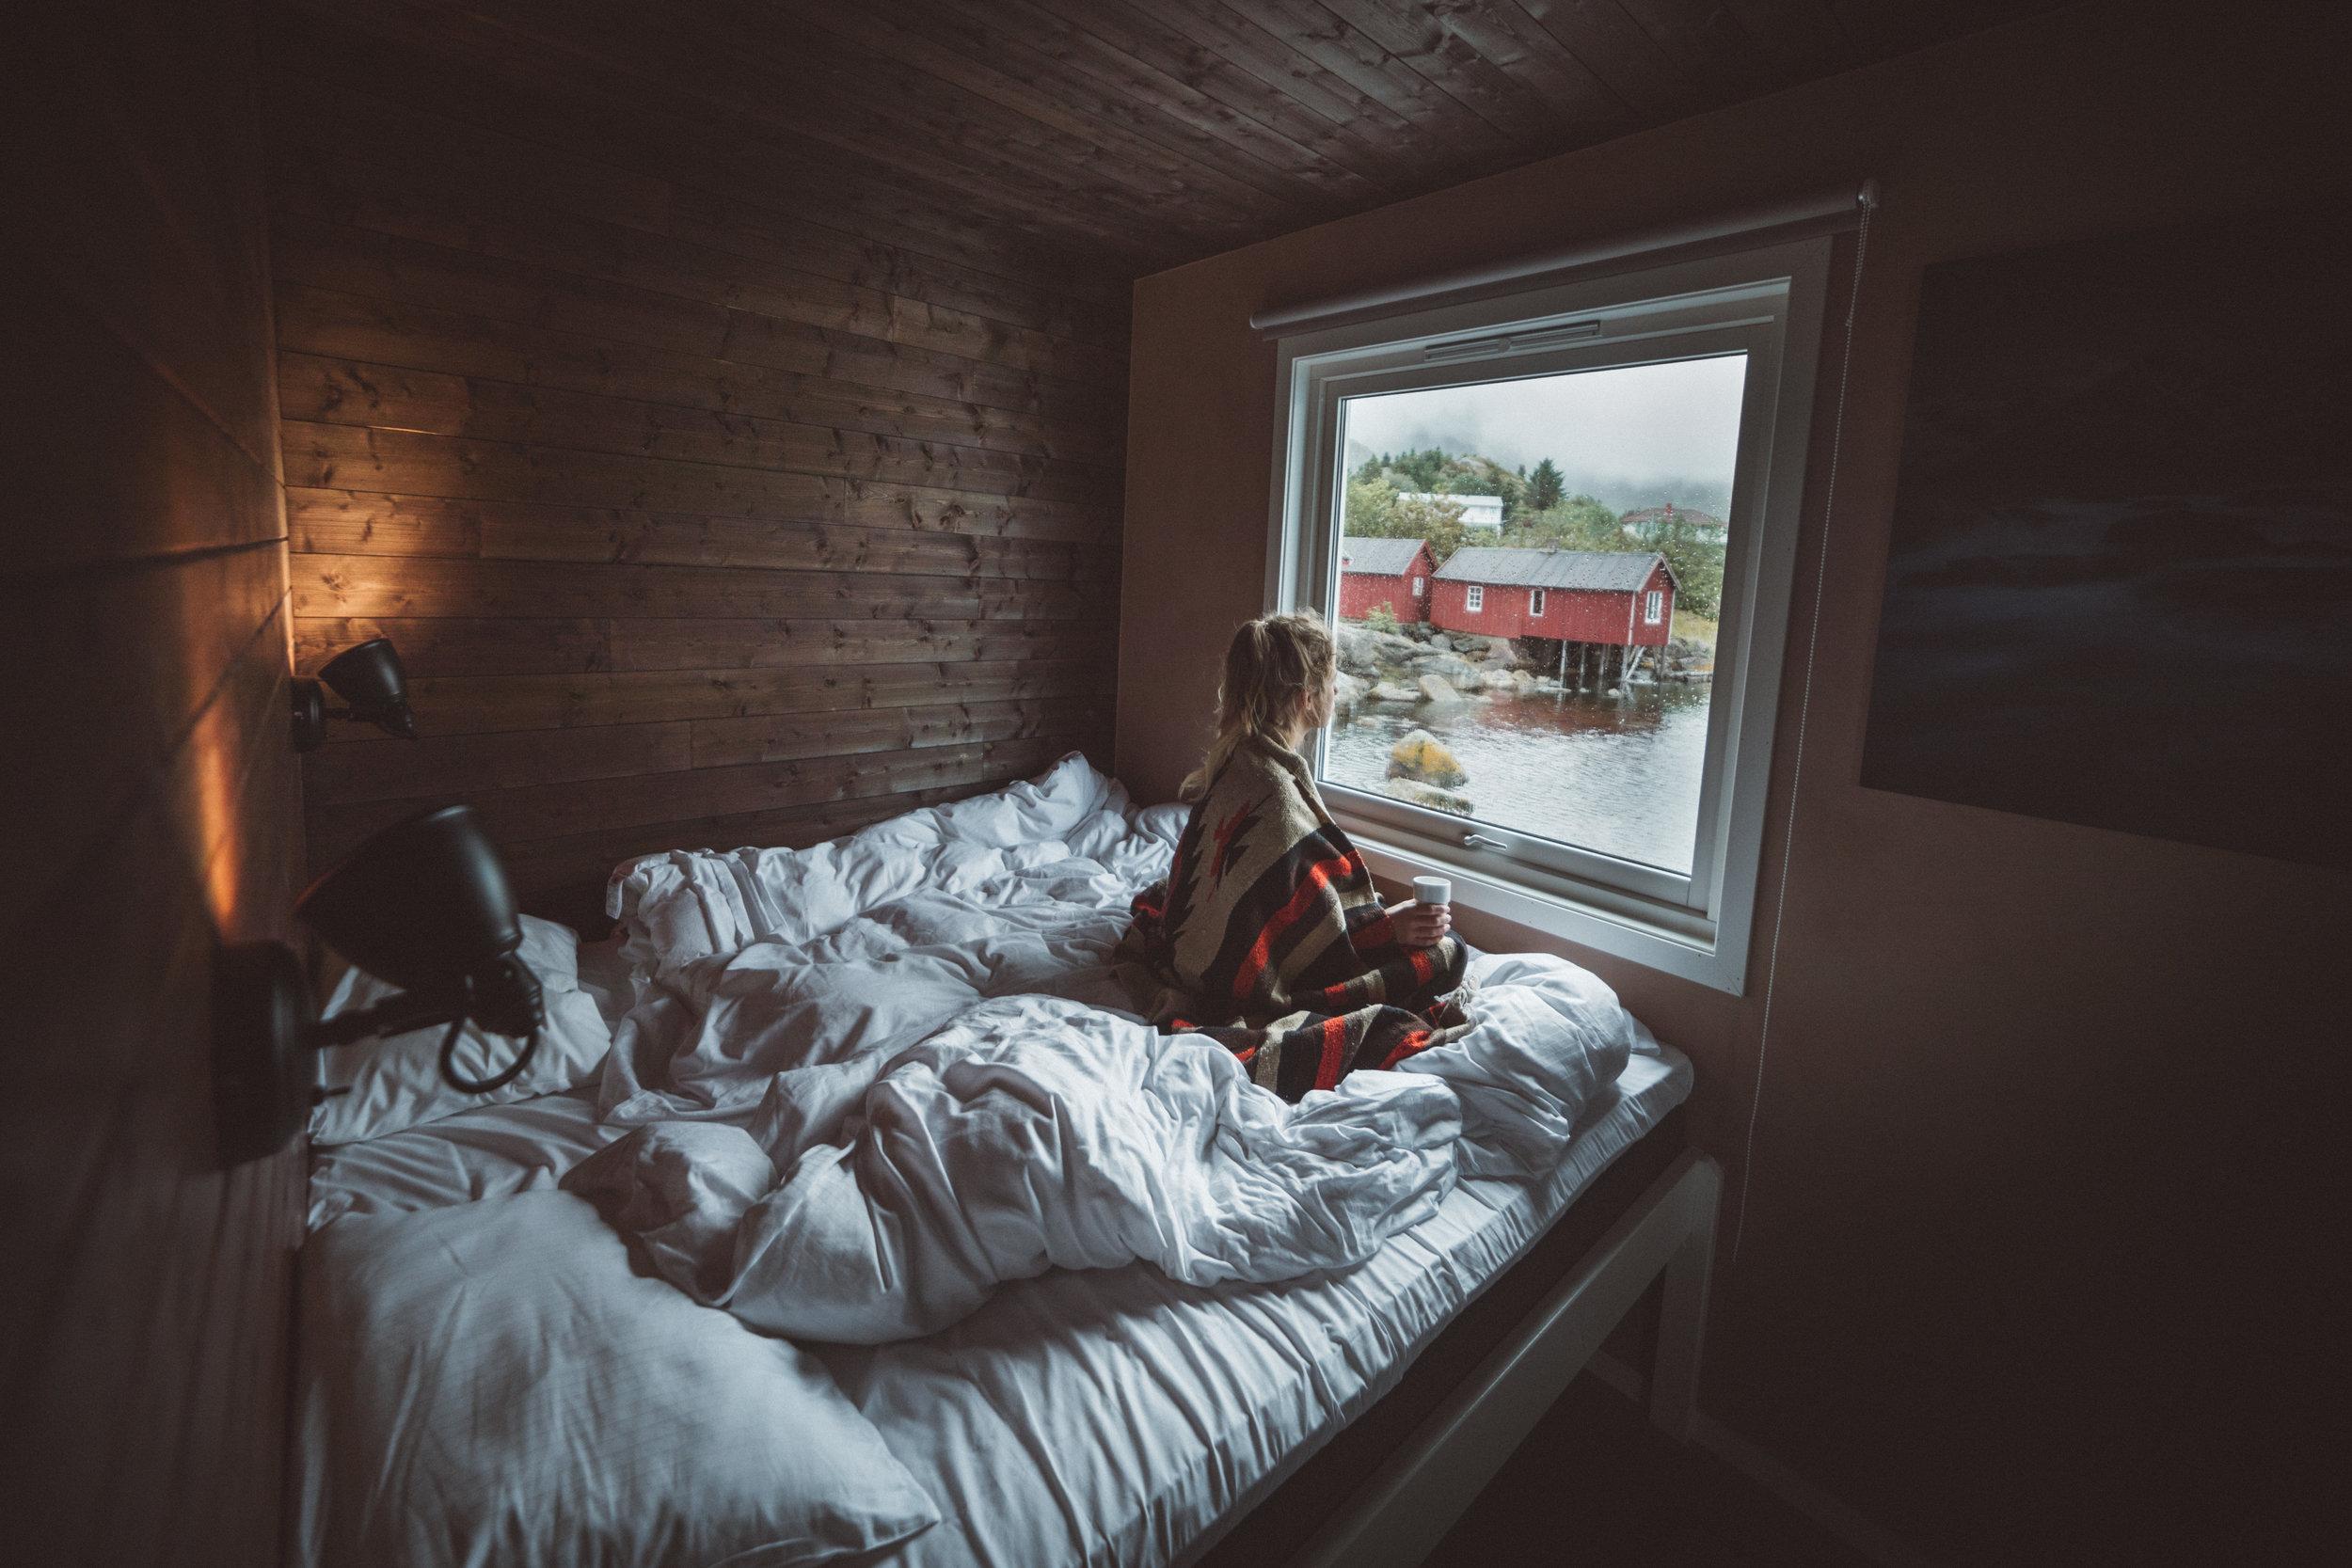 Waking up in our cozy cabin at Hattvika Lodge